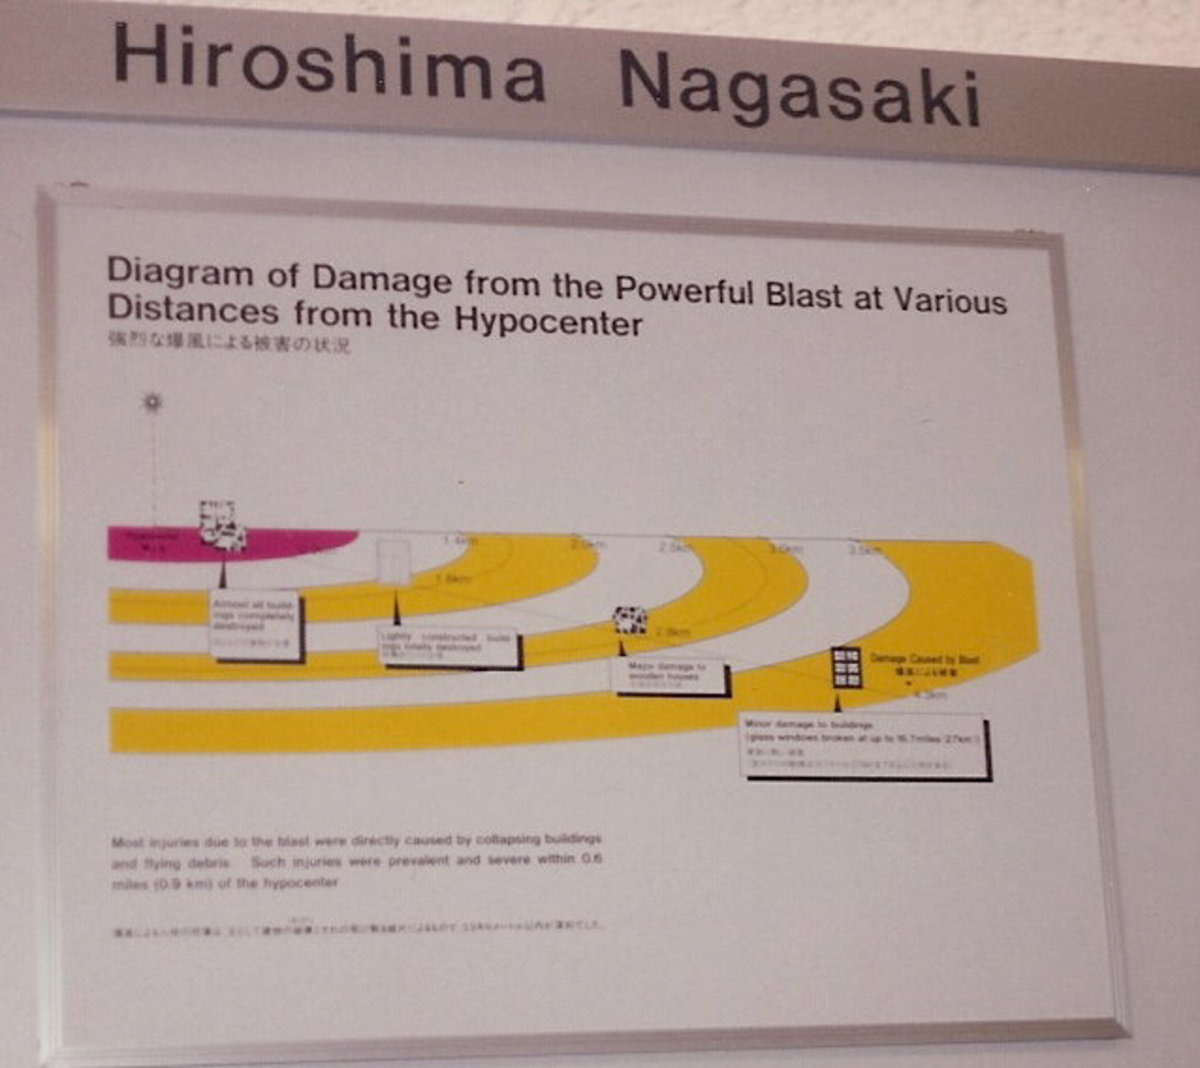 Destruction by distance from Hypocenter.